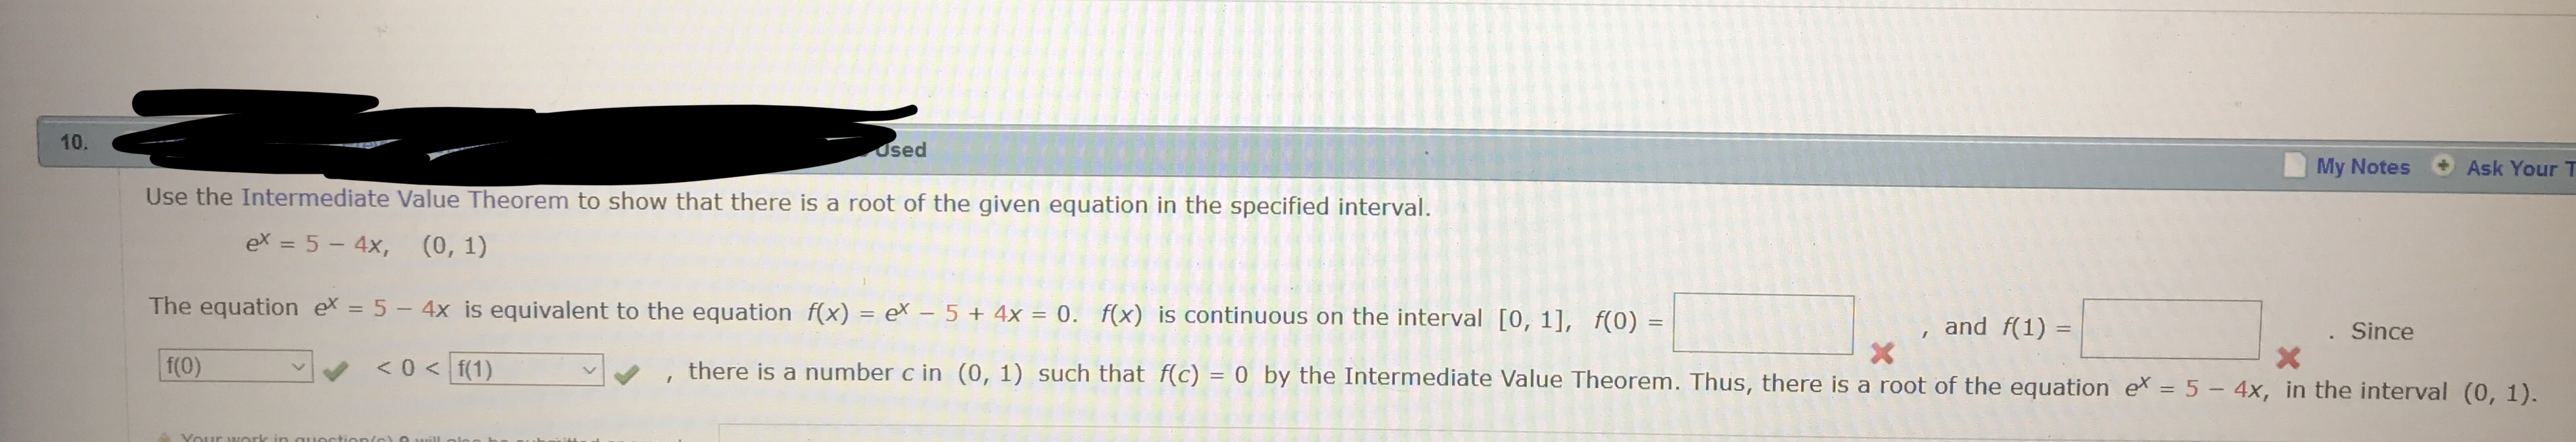 10 osed My Notes Ask Your T Use the Intermediate Value Theorem to show that there is a root of the given equation in the specified interval ex = 5-4), (0,1) The equation ex-5- 4x is equivalent to the equation f(x) ex 5 4x 0fx) is continuous on the interval [0, 11, f(0) , and f(1)- Since v, , there is a number c in (0, 1) such that f(c)-0 by the Intermediate Value Theorem. Thus, there is a root of the